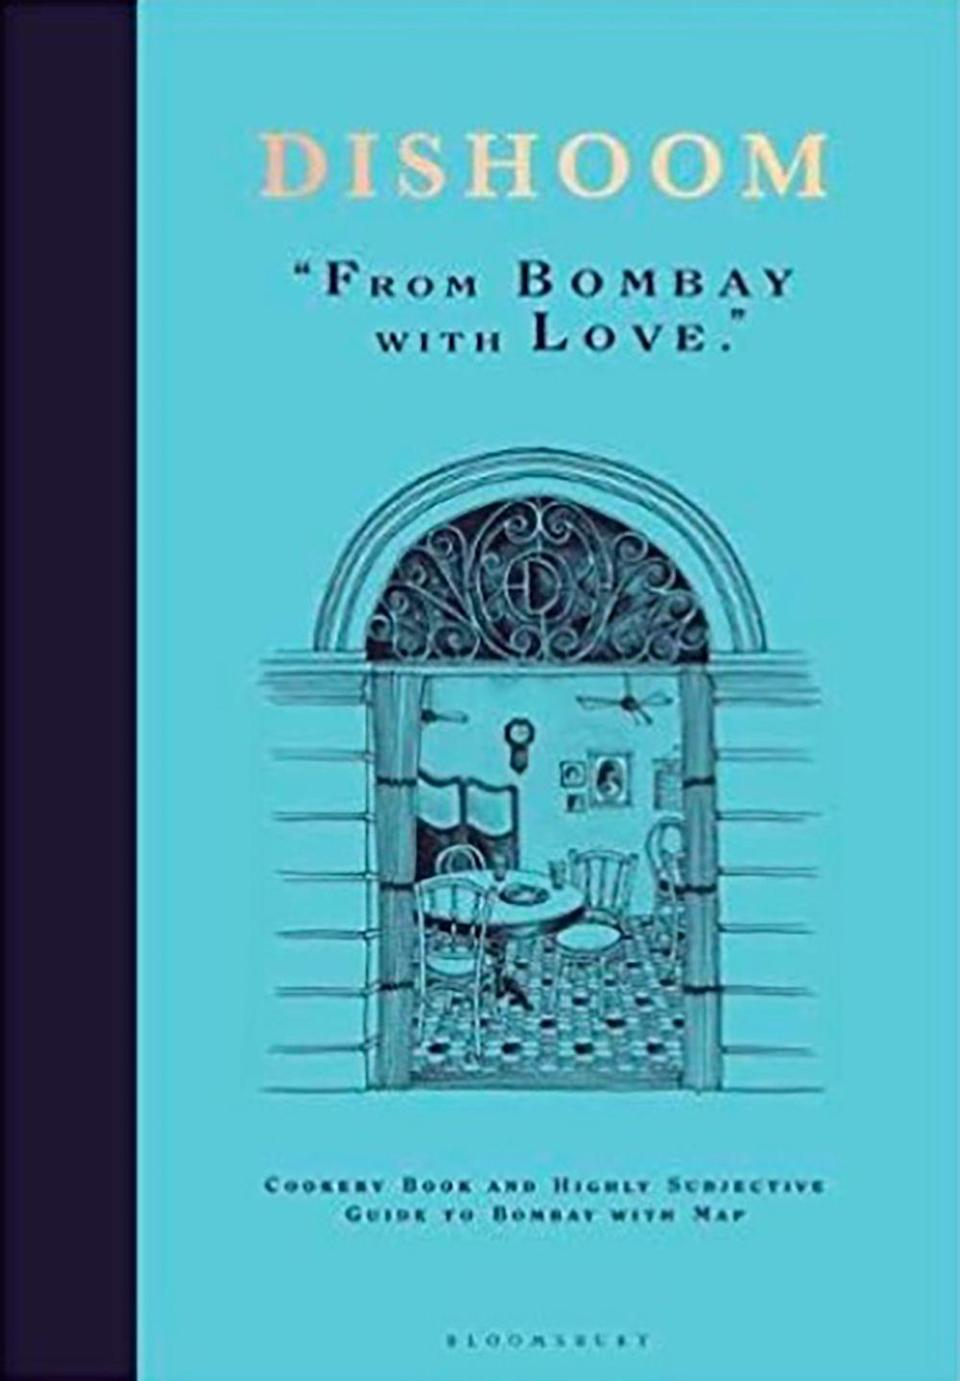 """<p><a class=""""link rapid-noclick-resp"""" href=""""https://www.amazon.co.uk/Dishoom-Bombay-Love-Shamil-Thakrar/dp/1408890674/ref=sr_1_29?qid=1567162422&s=books&sr=1-29&tag=hearstuk-yahoo-21&ascsubtag=%5Bartid%7C1919.g.15922606%5Bsrc%7Cyahoo-uk"""" rel=""""nofollow noopener"""" target=""""_blank"""" data-ylk=""""slk:SHOP NOW"""">SHOP NOW</a> £18.96, Amazon</p><p>Let's be honest; we're all desperate to know how to make an egg naan, aren't we? Finally Dishoom are sharing their secrets, with a recipe book stuffed with the secrets of their Black Daal, Okra Fries, Jackfruit Biryani, Chicken Ruby and Lamb Raan.</p>"""